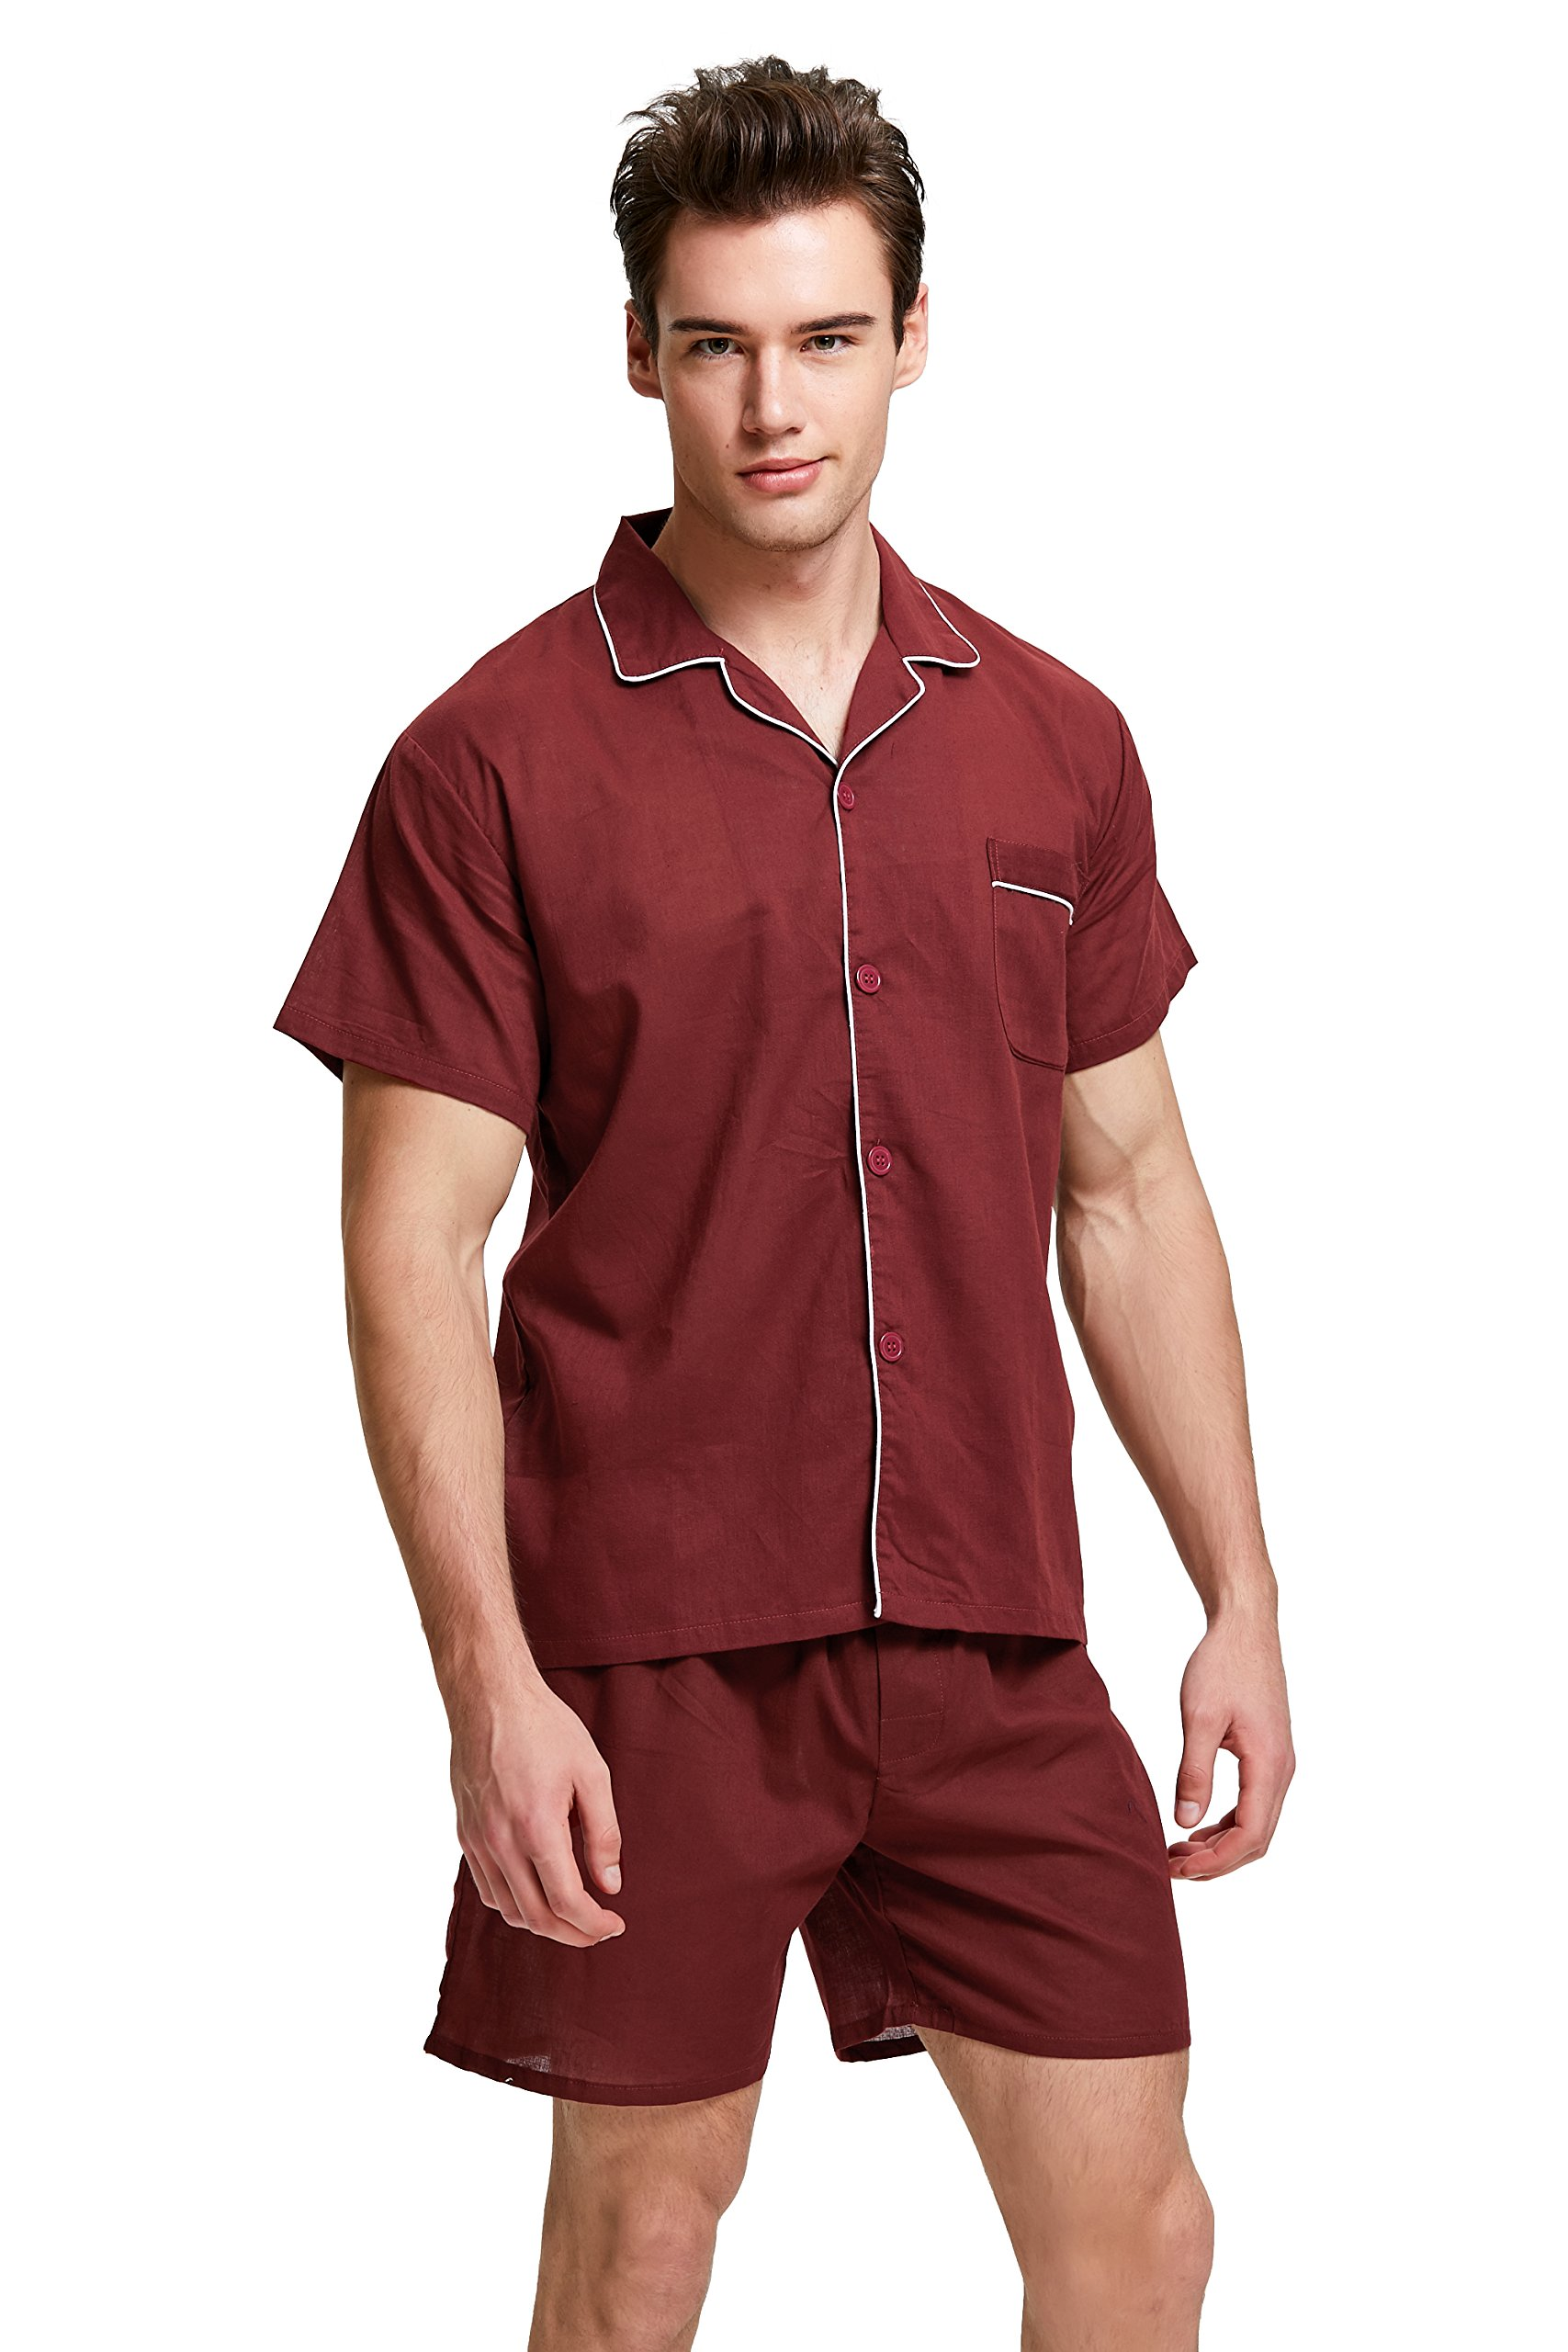 Men's Cotton Pajama Set, Short Sleeve Woven Sleepwear with Shorts, Button Down Nightwear (Burgundy with White Piping, Medium)